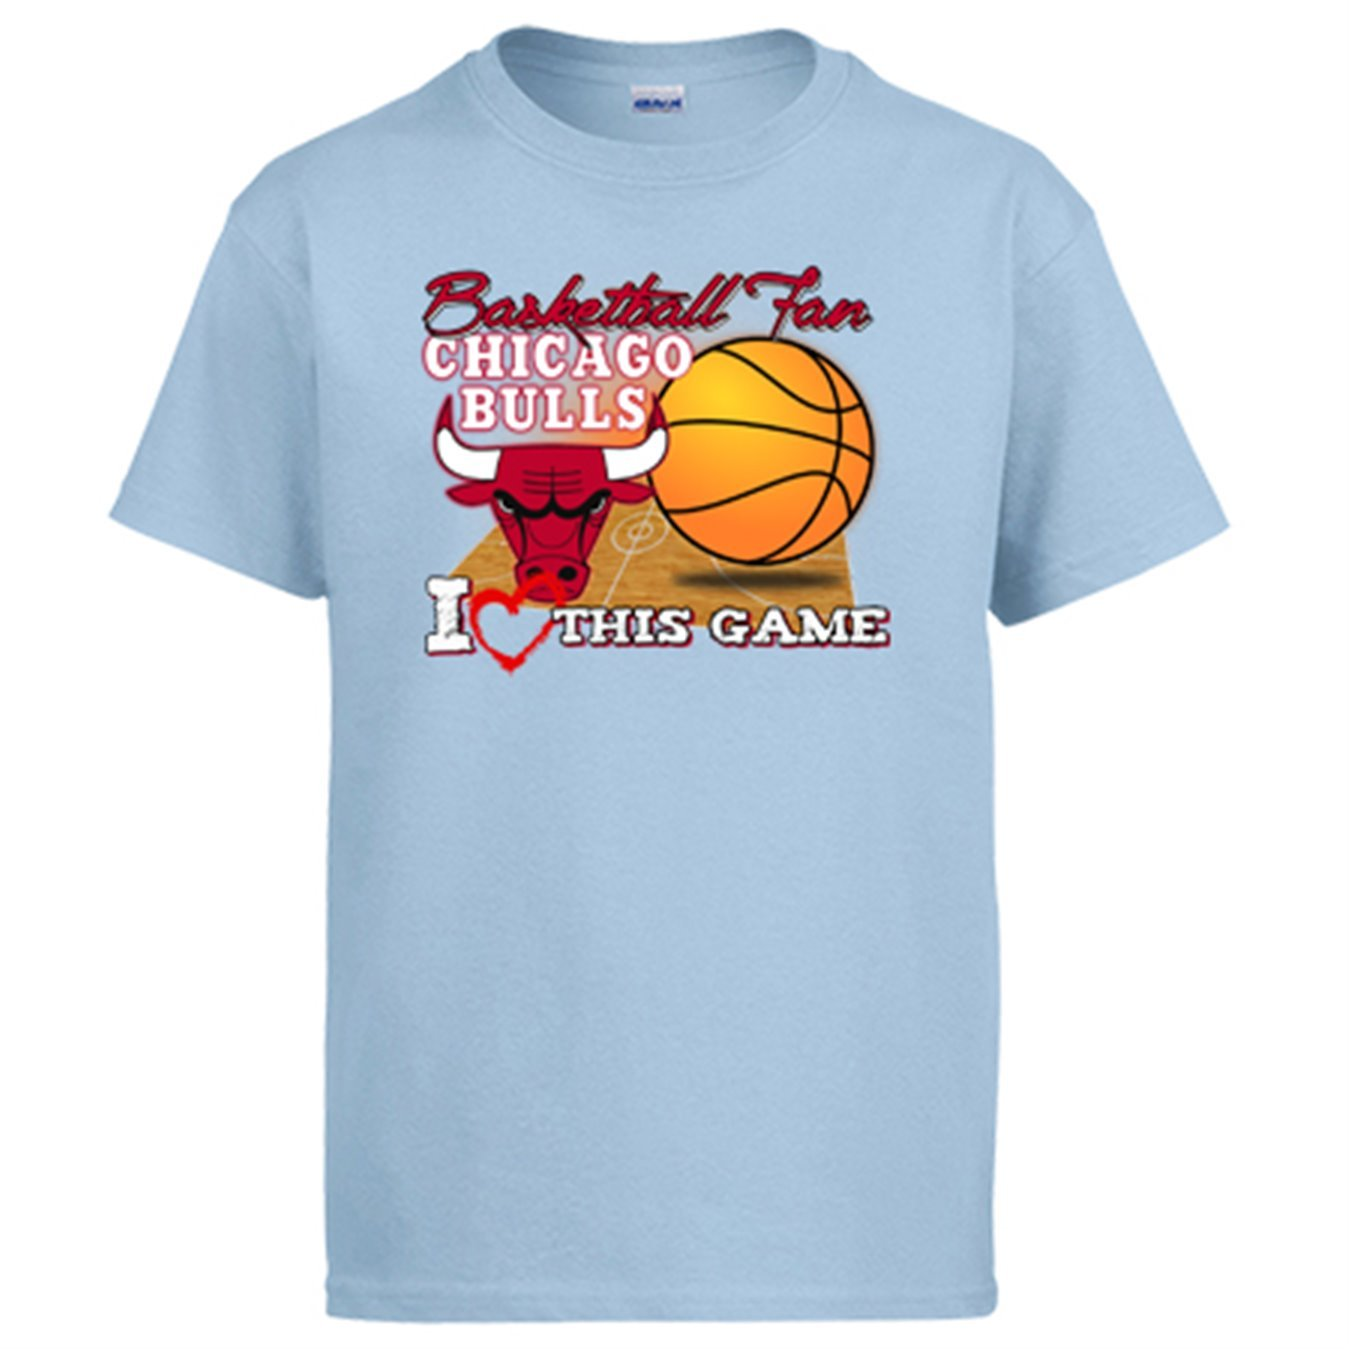 Camiseta NBA Chicago Bulls Baloncesto Basketball Fan I Love This Game: Amazon.es: Ropa y accesorios